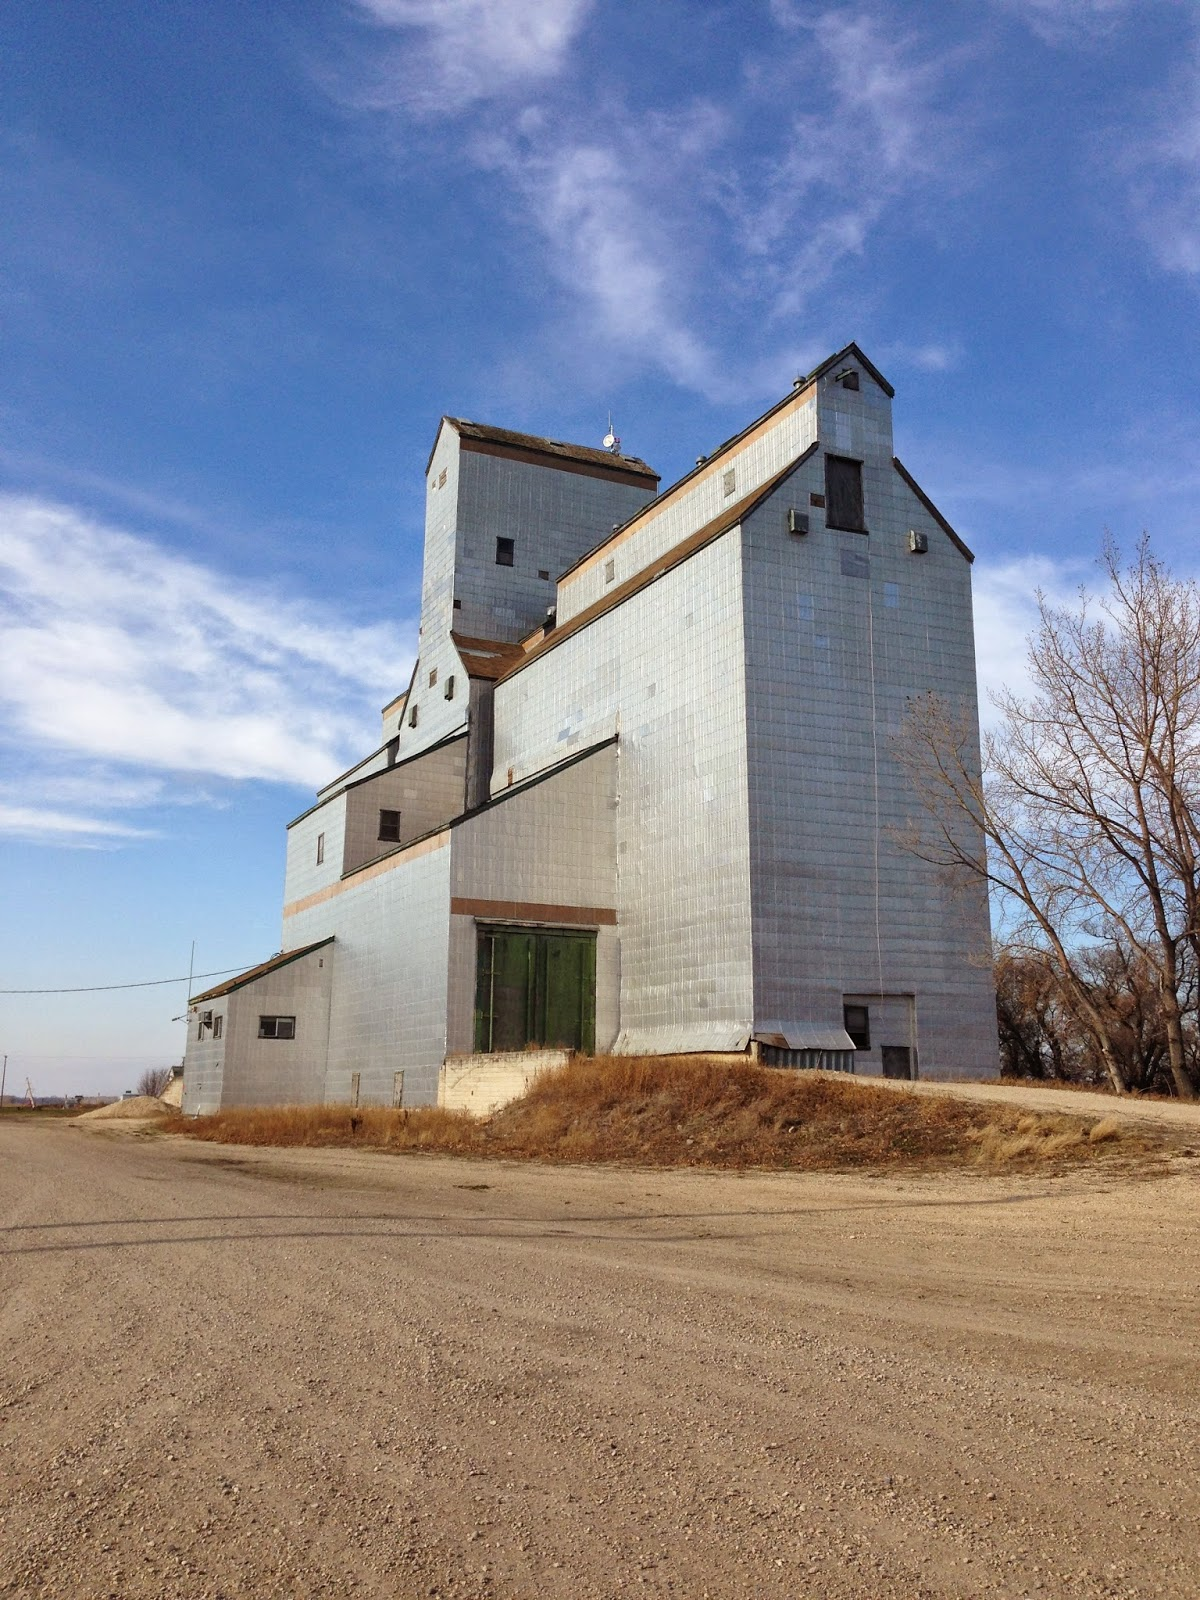 Royal lepage carman grain elevator for sale in manitoba Elevators for sale